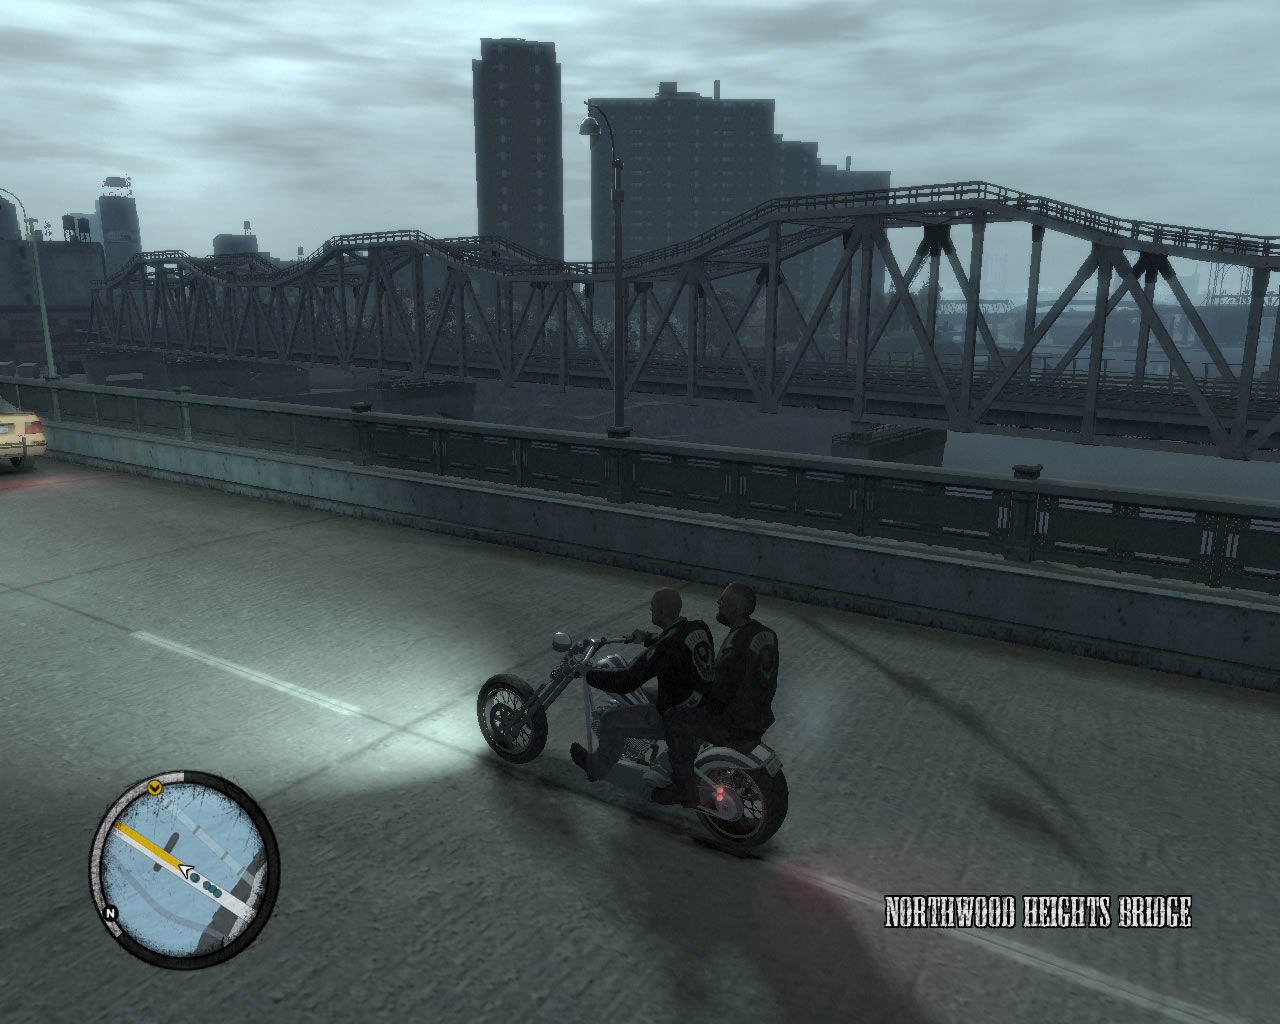 Grand Theft Auto IV: The Lost and Damned Windows Liberty City is as beautiful as ever